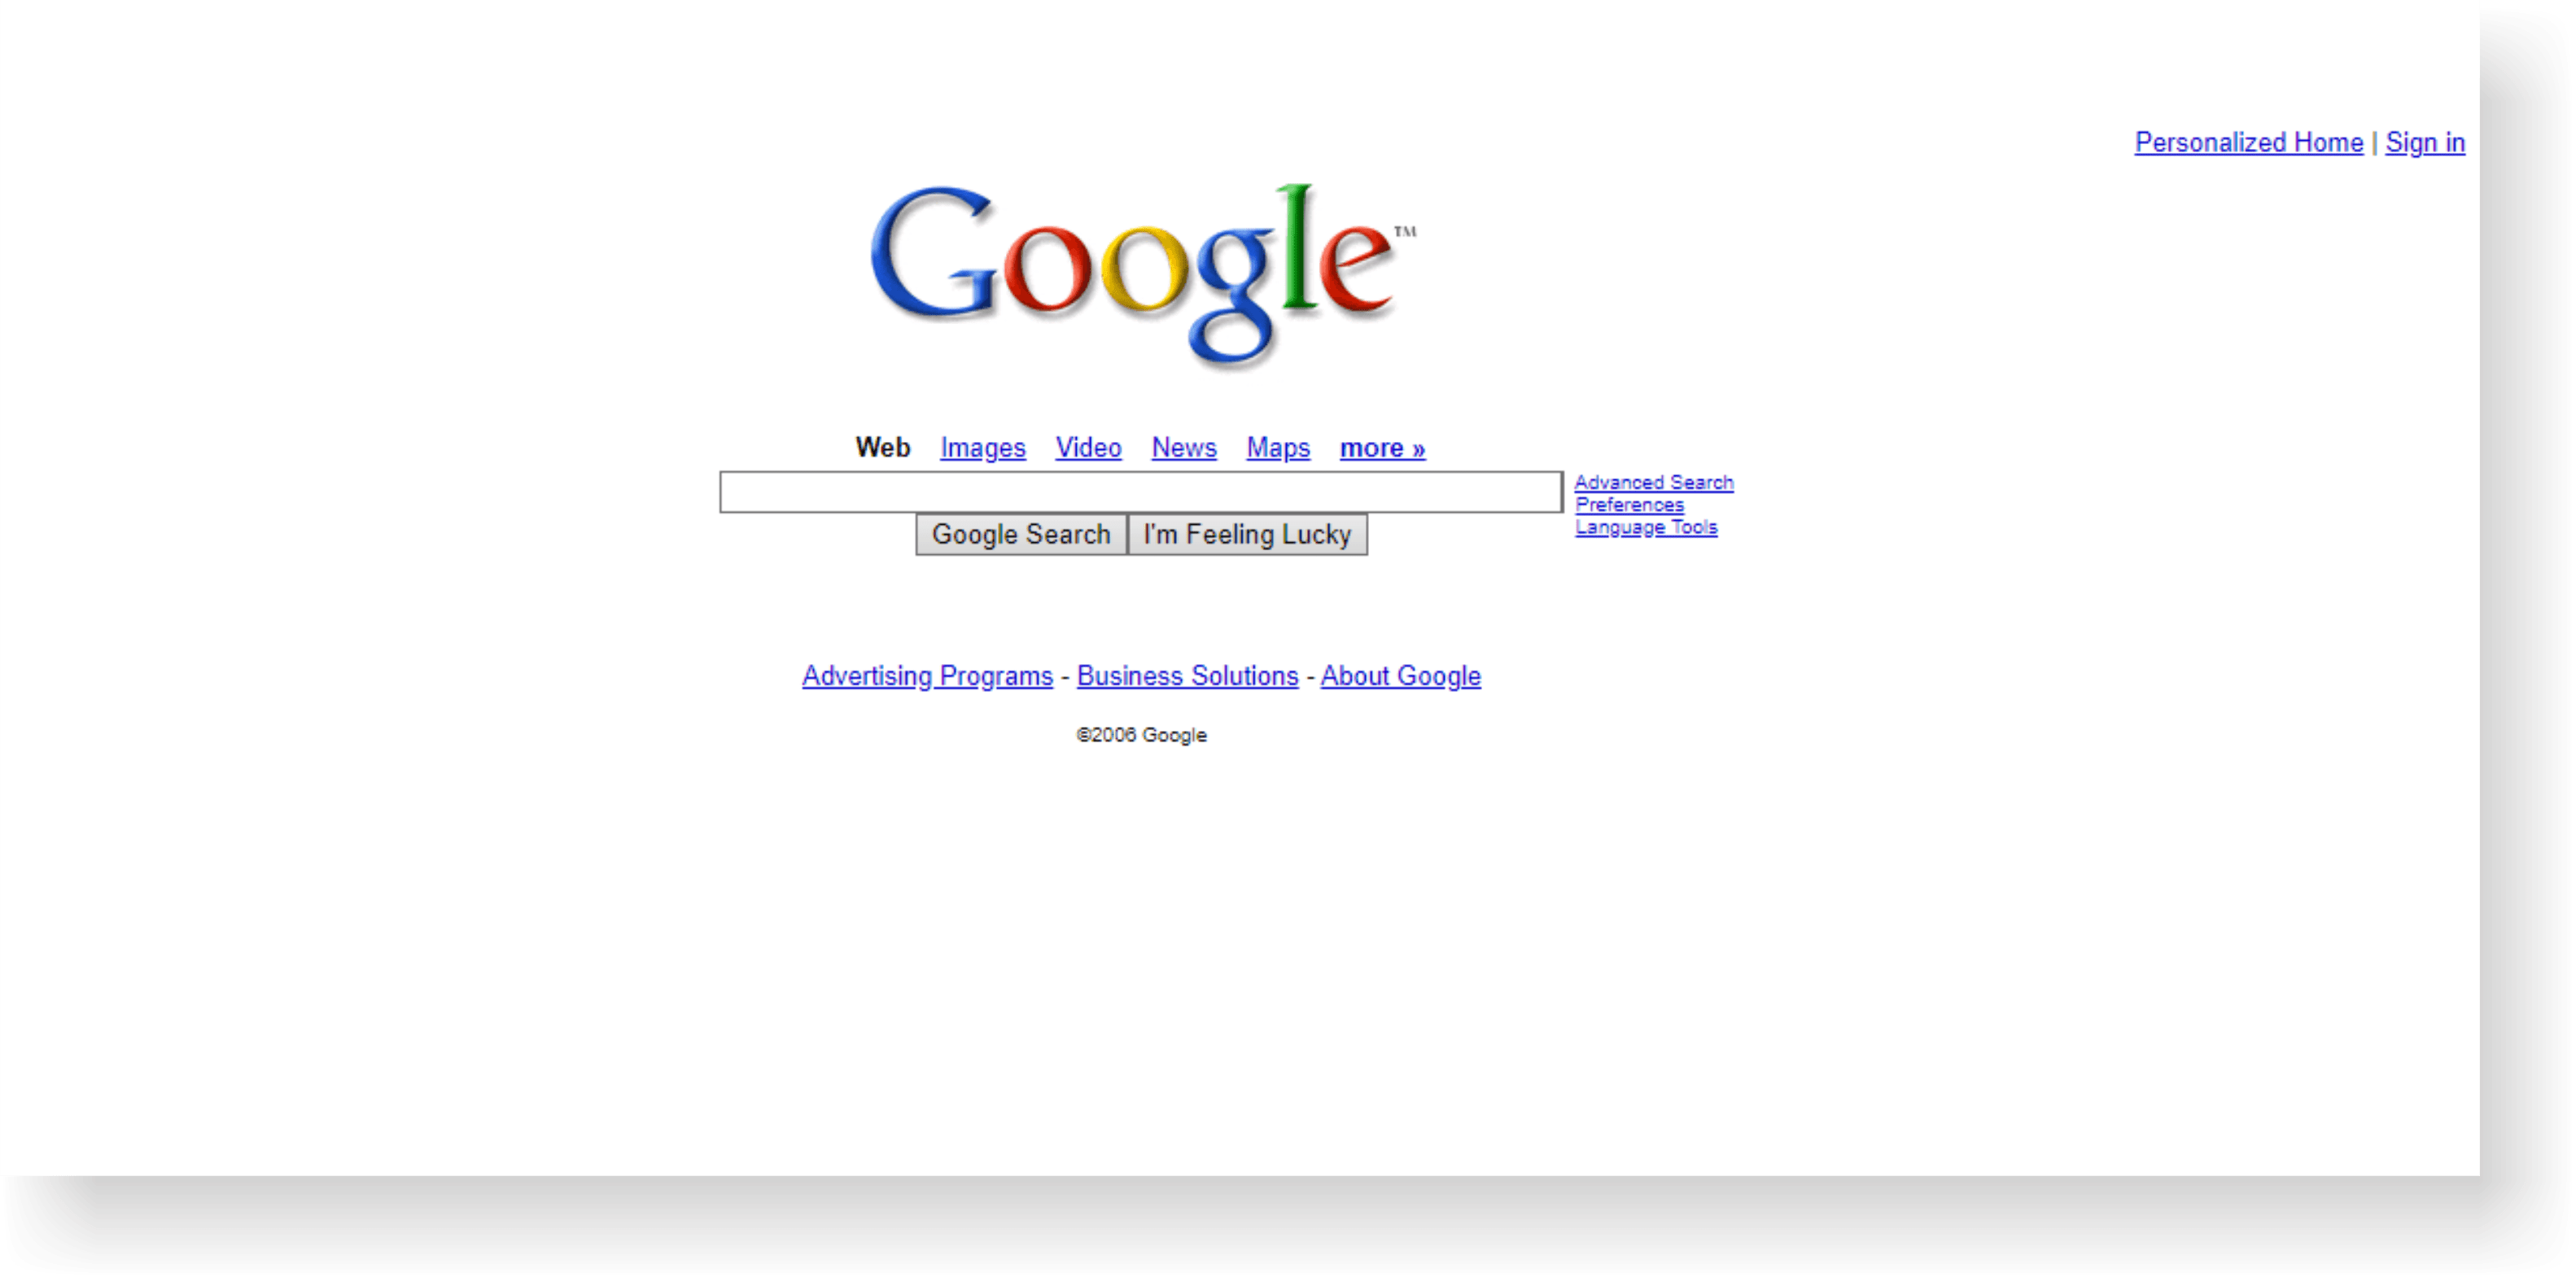 google site history on internet archive 2006